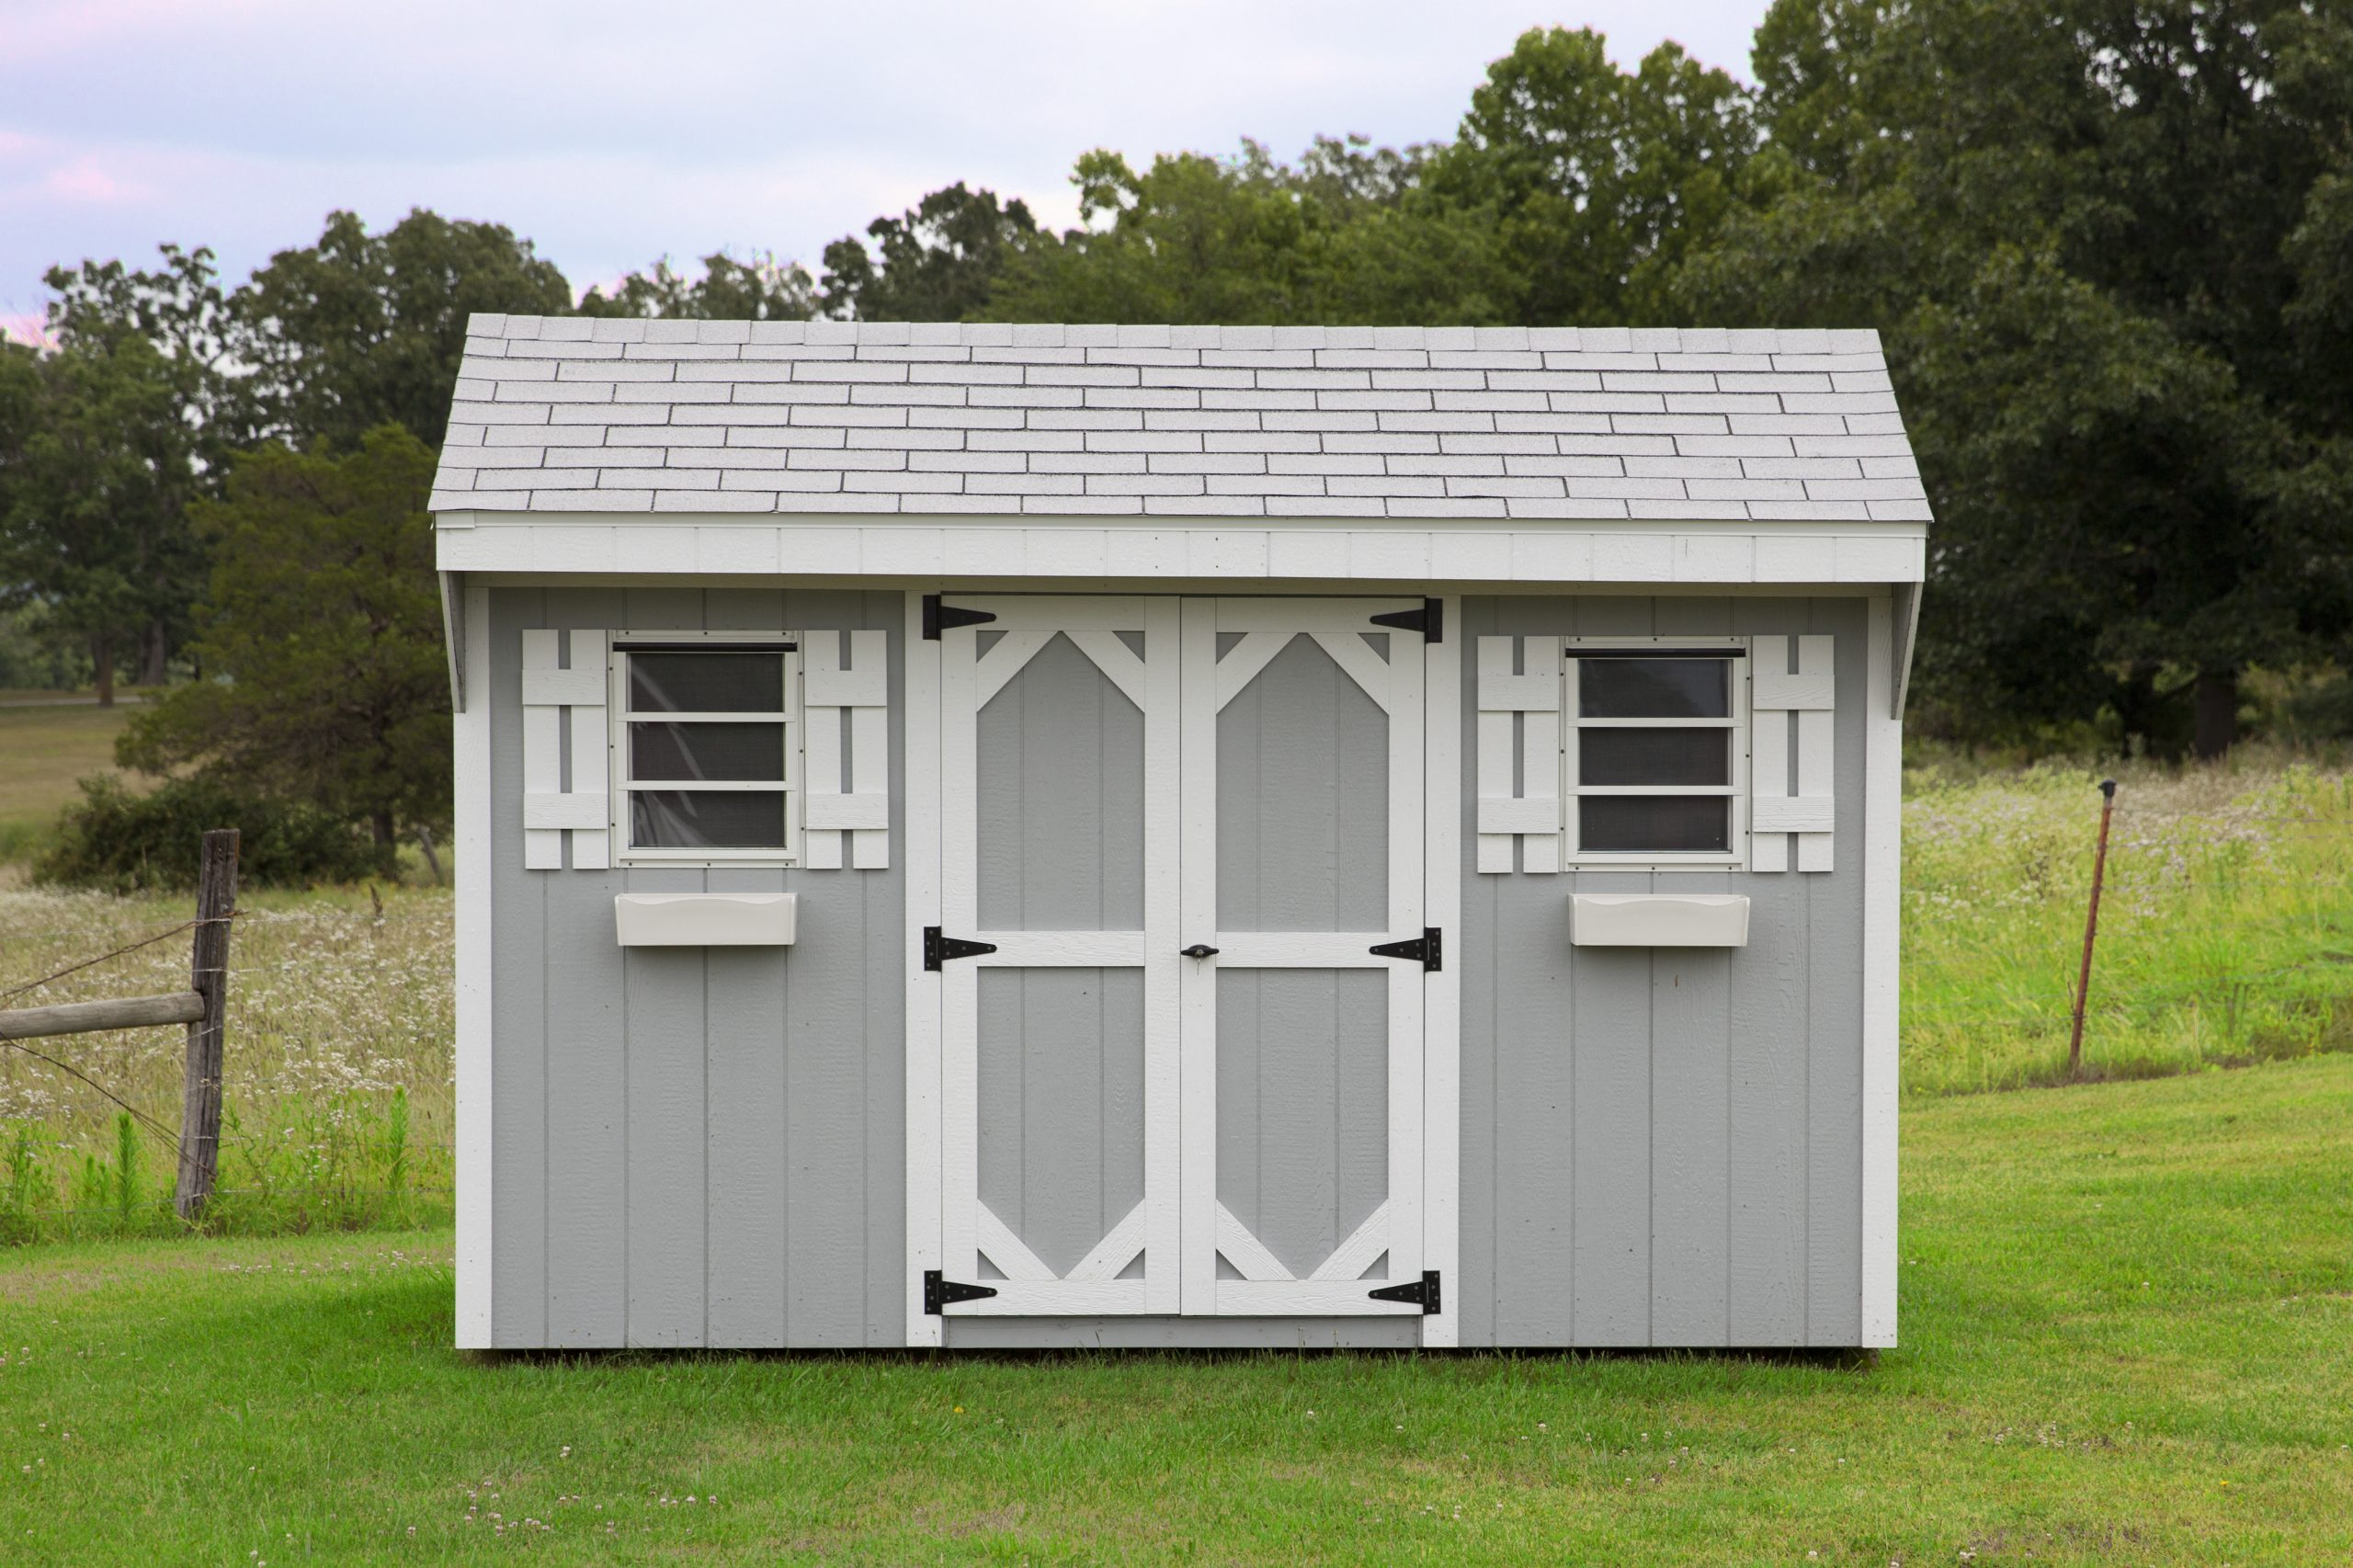 sheds for sale in fayetteville arkansas